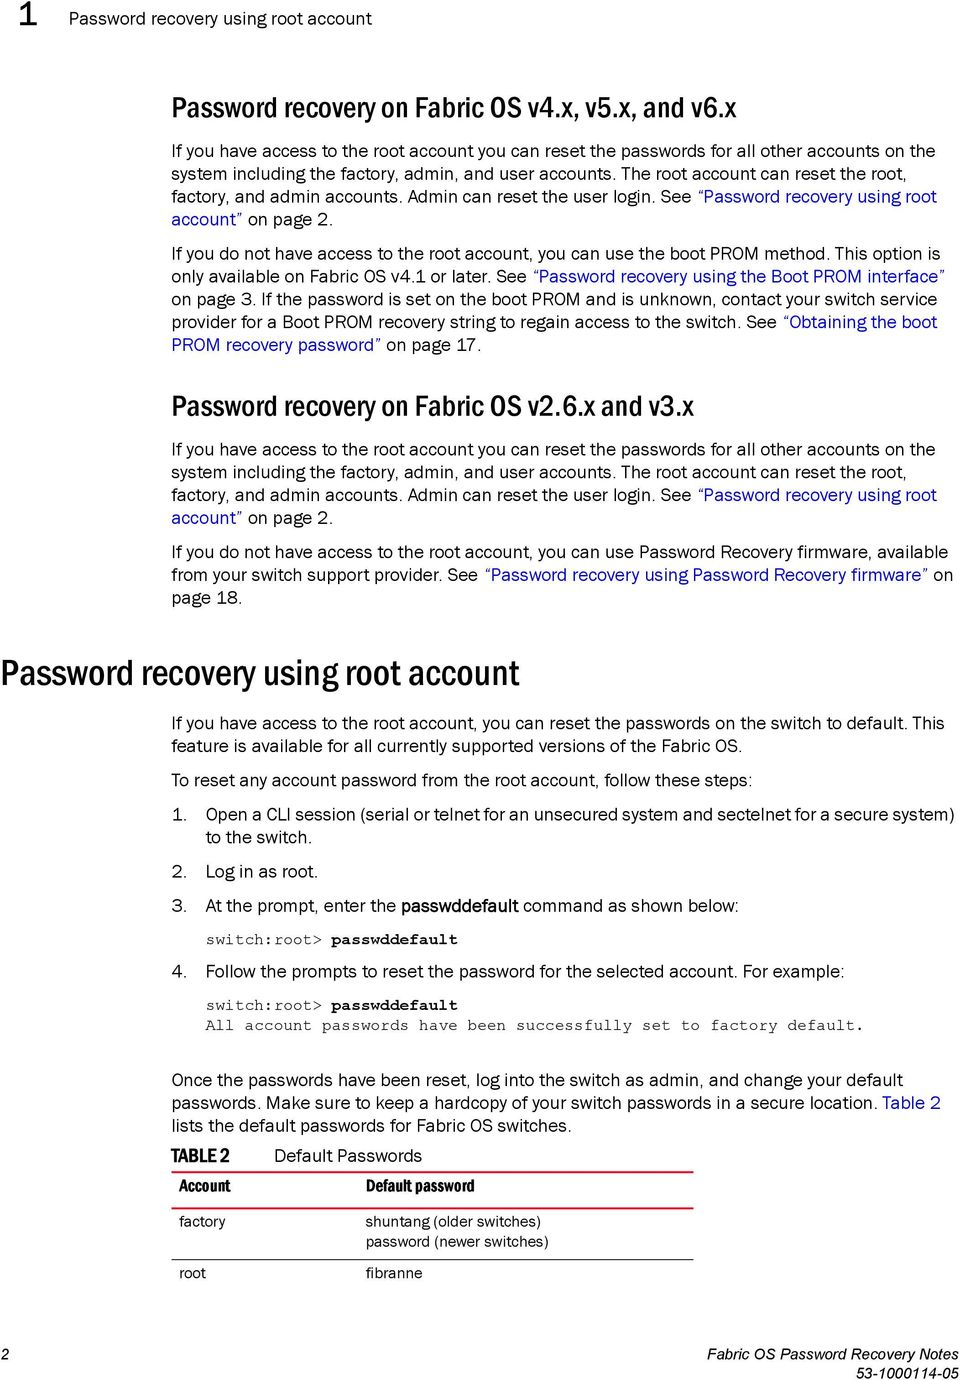 The root account can reset the root, factory, and admin accounts. Admin can reset the user login. See Password recovery using root account on page 2.